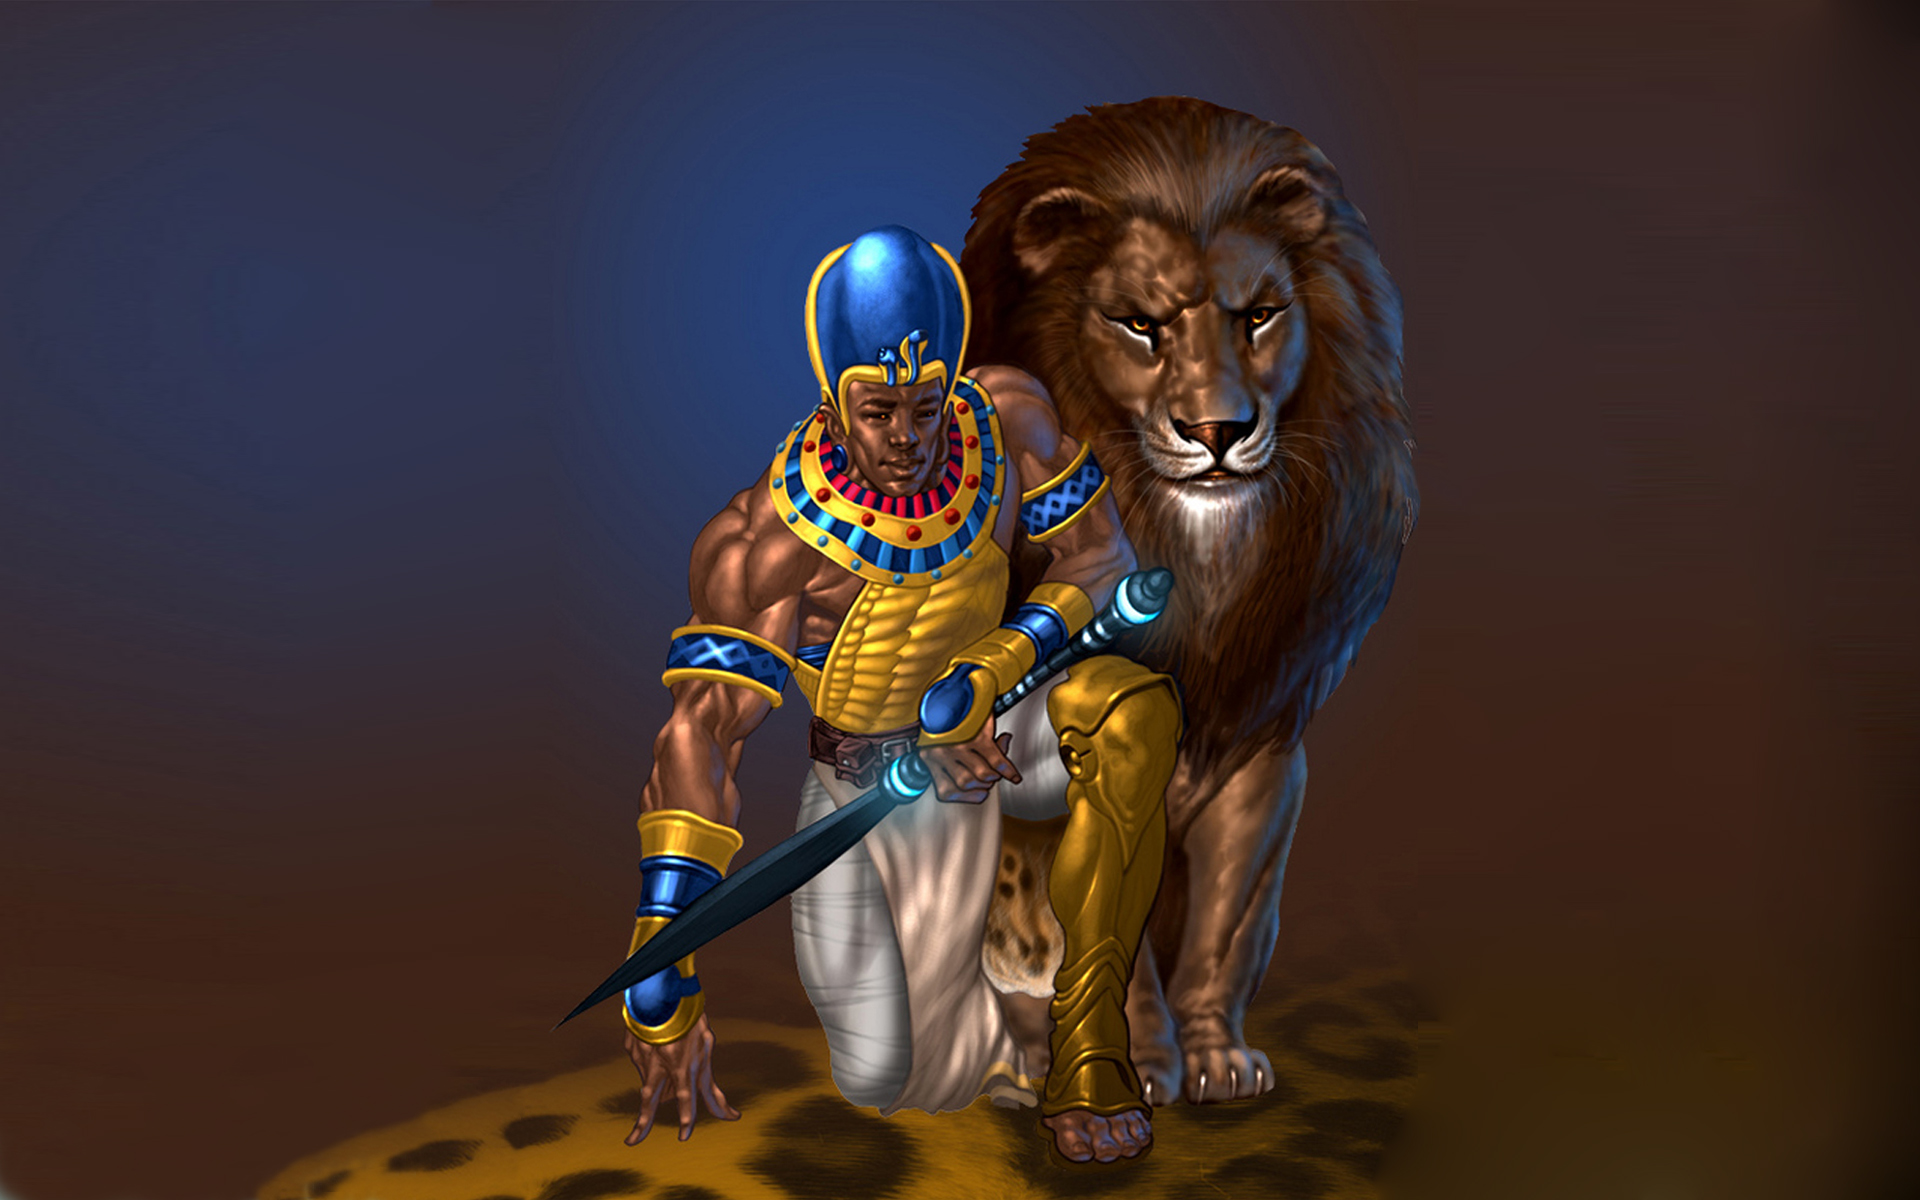 African Warrior , HD Wallpaper & Backgrounds